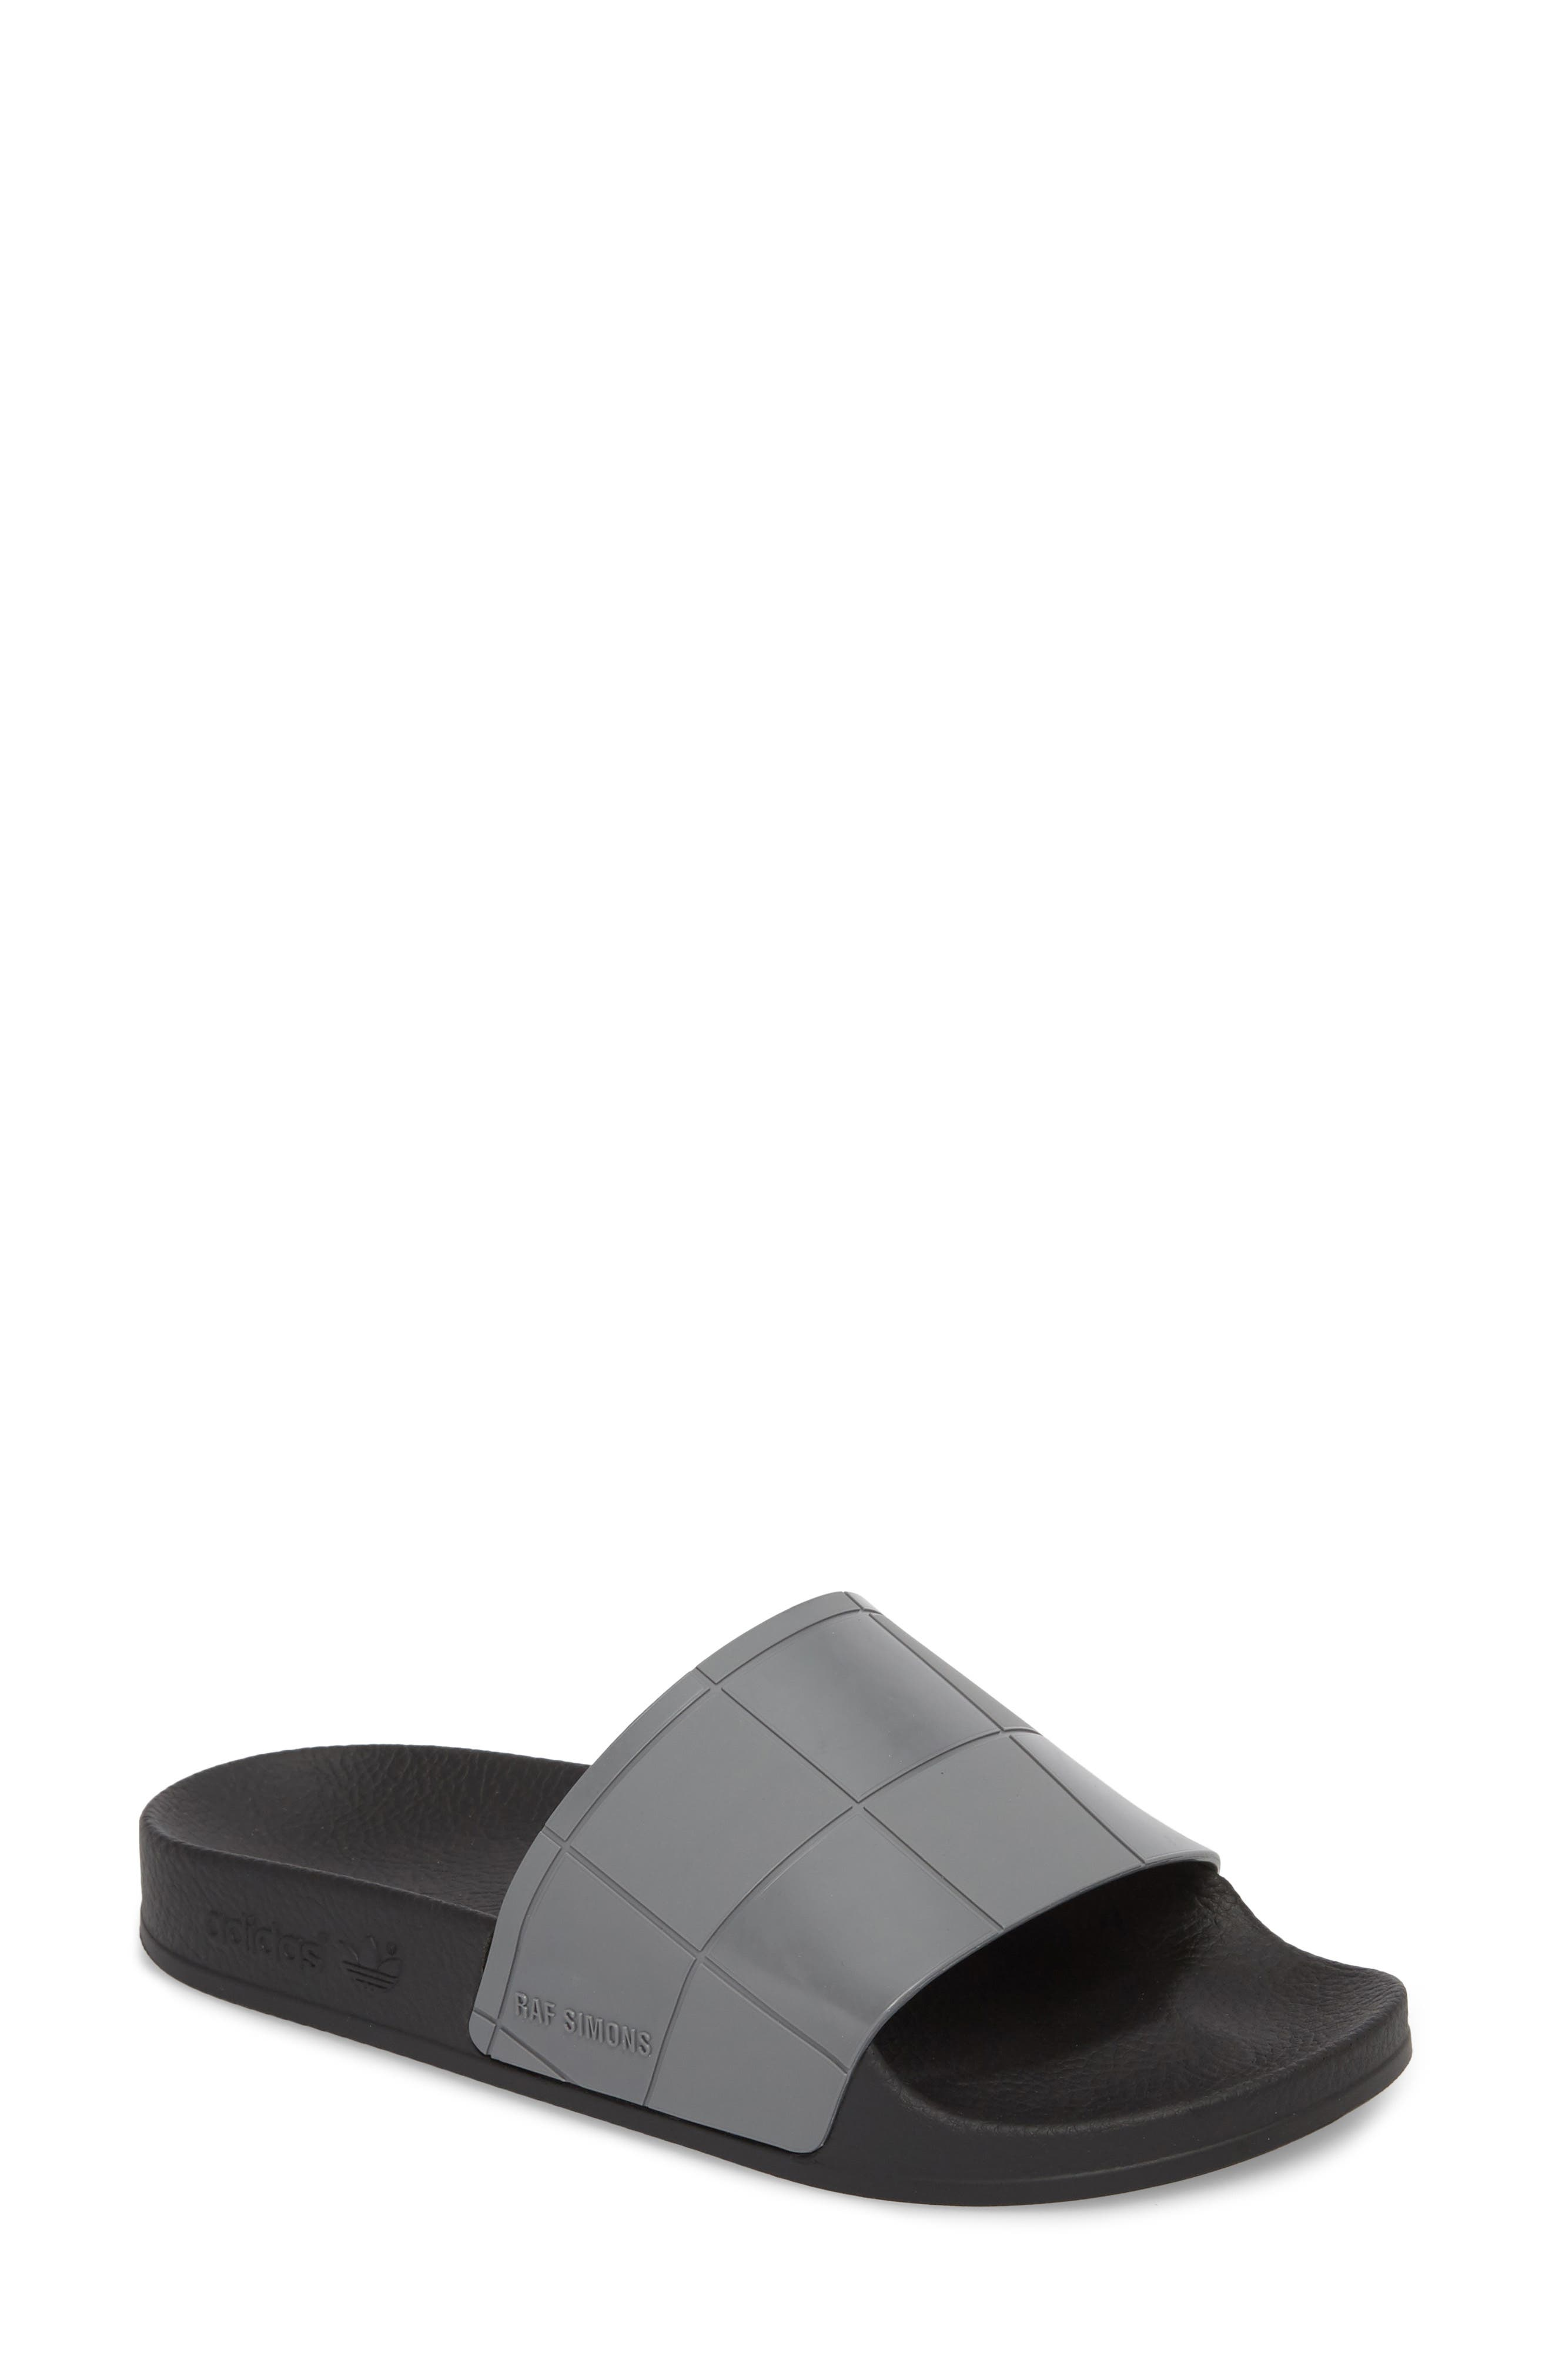 adidas by Raf Simons Adilette Slide Sandal,                         Main,                         color, 001